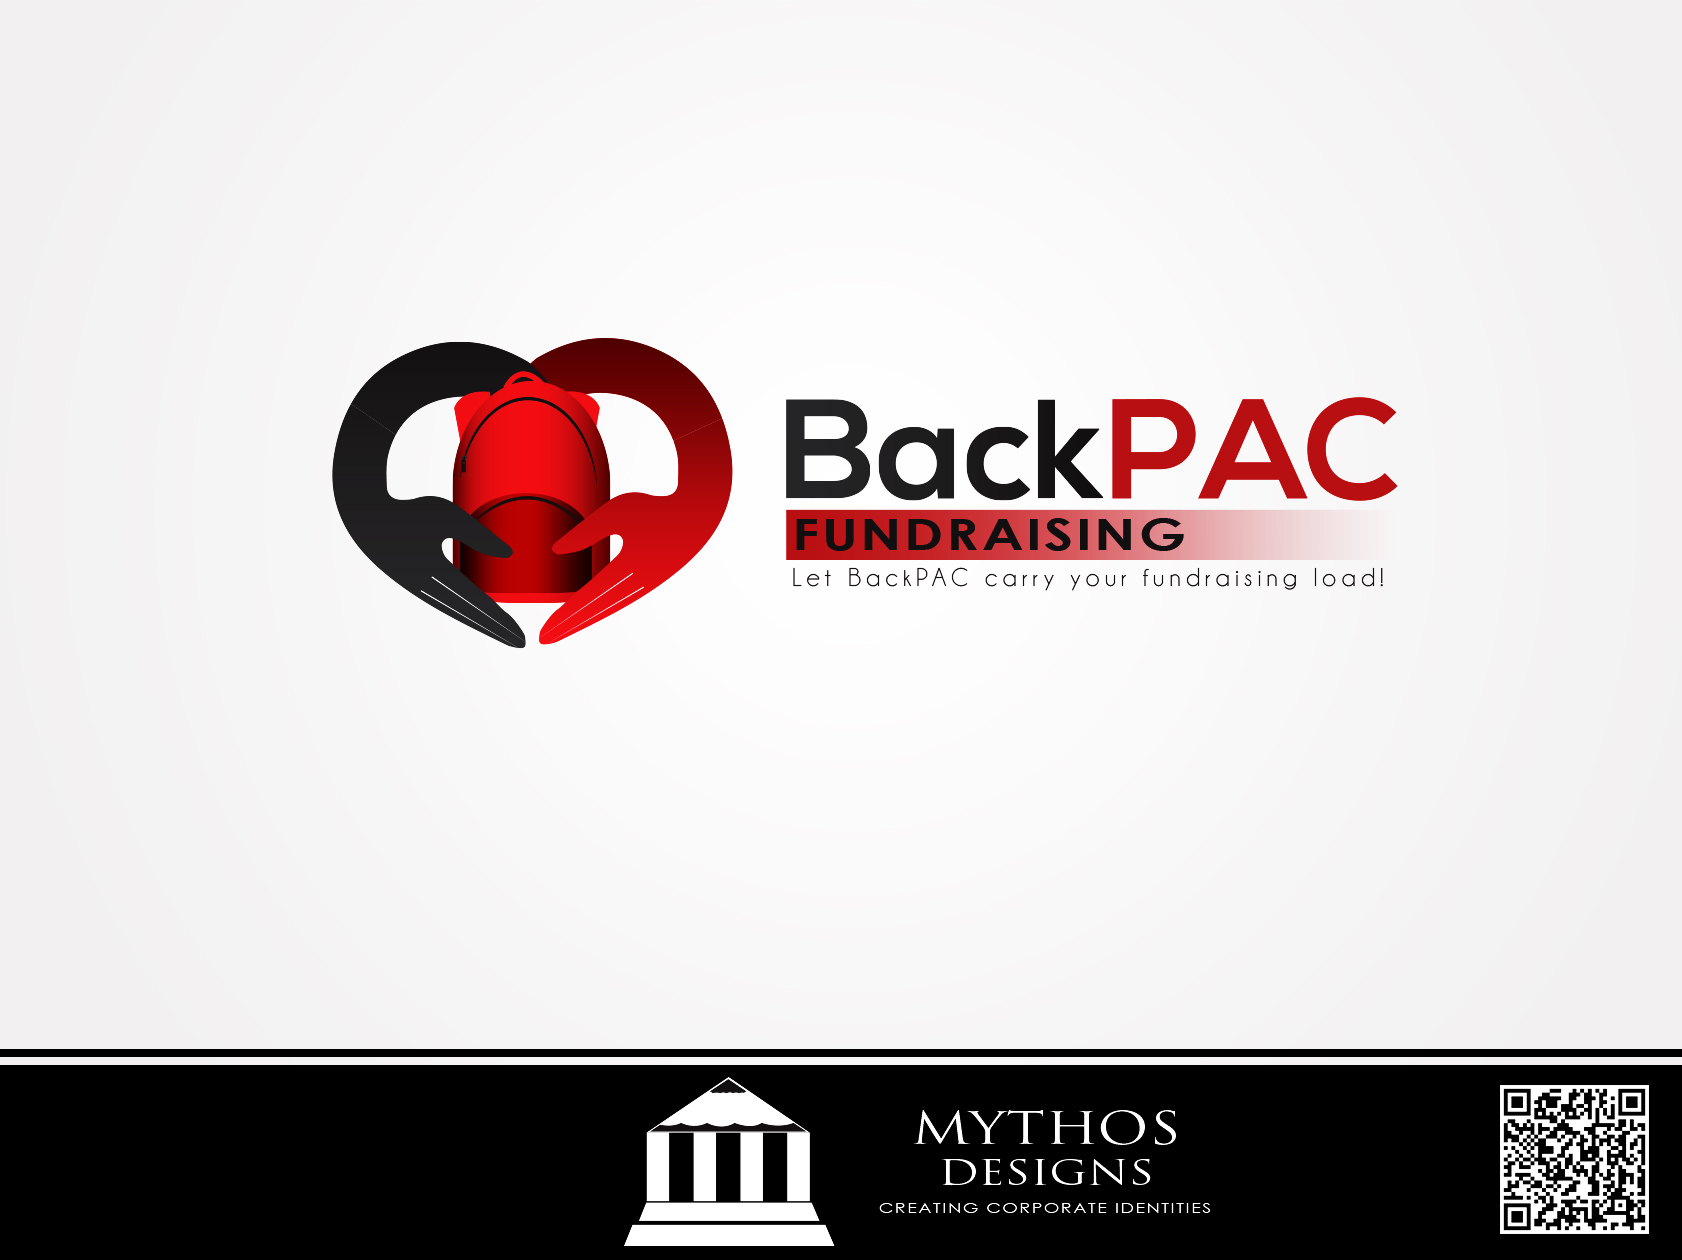 Logo Design by Mythos Designs - Entry No. 91 in the Logo Design Contest Imaginative Logo Design for BackPAC Fundraising.